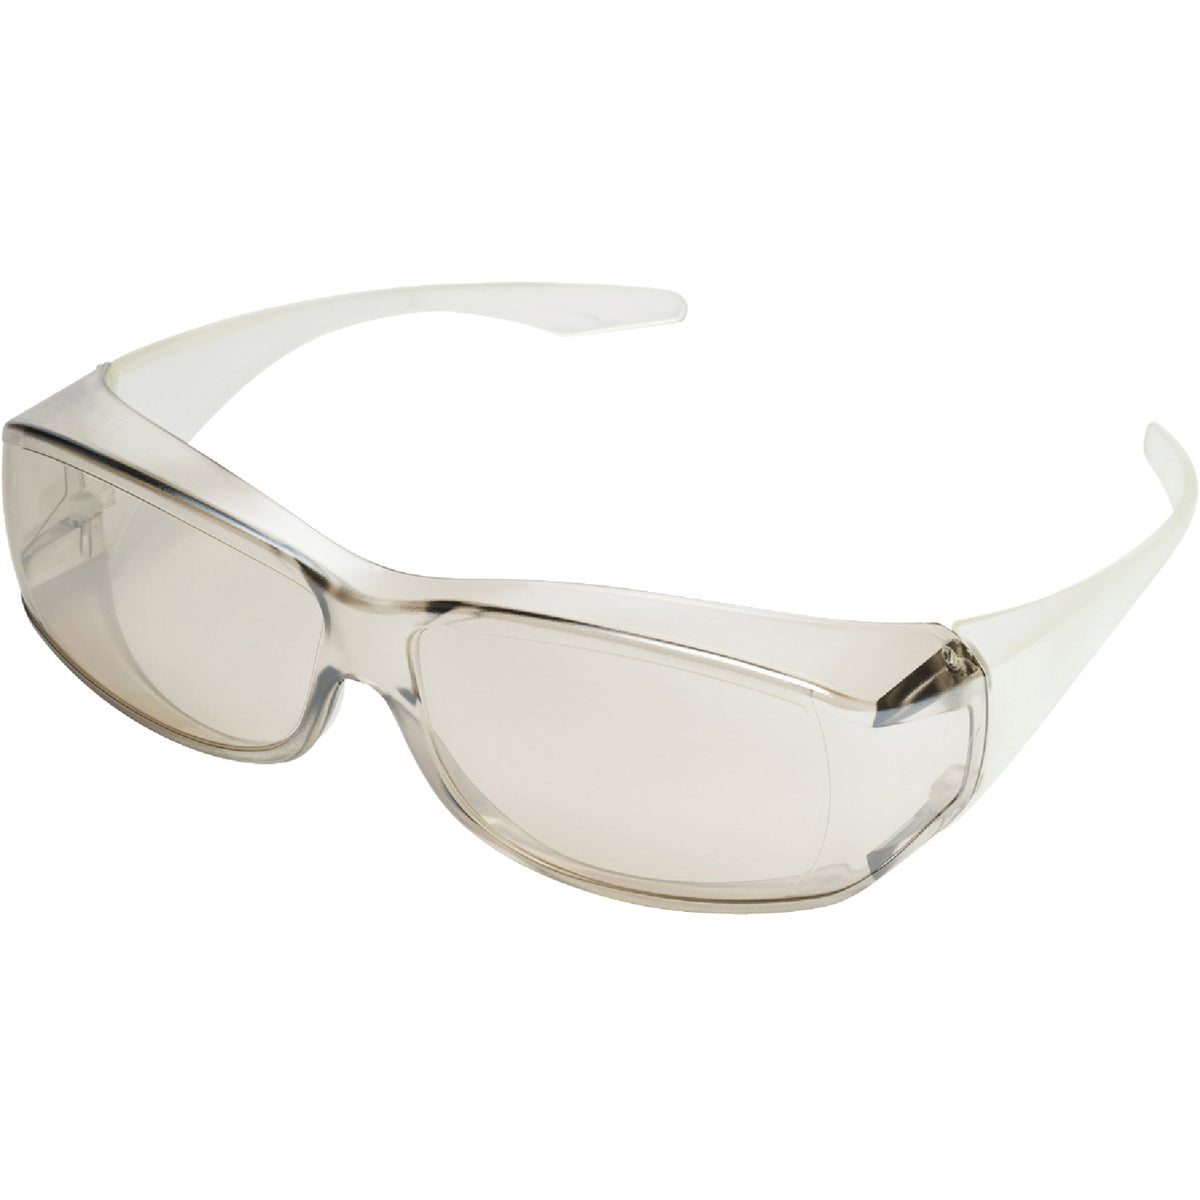 OVR-GLAS SAFETY GLASSES